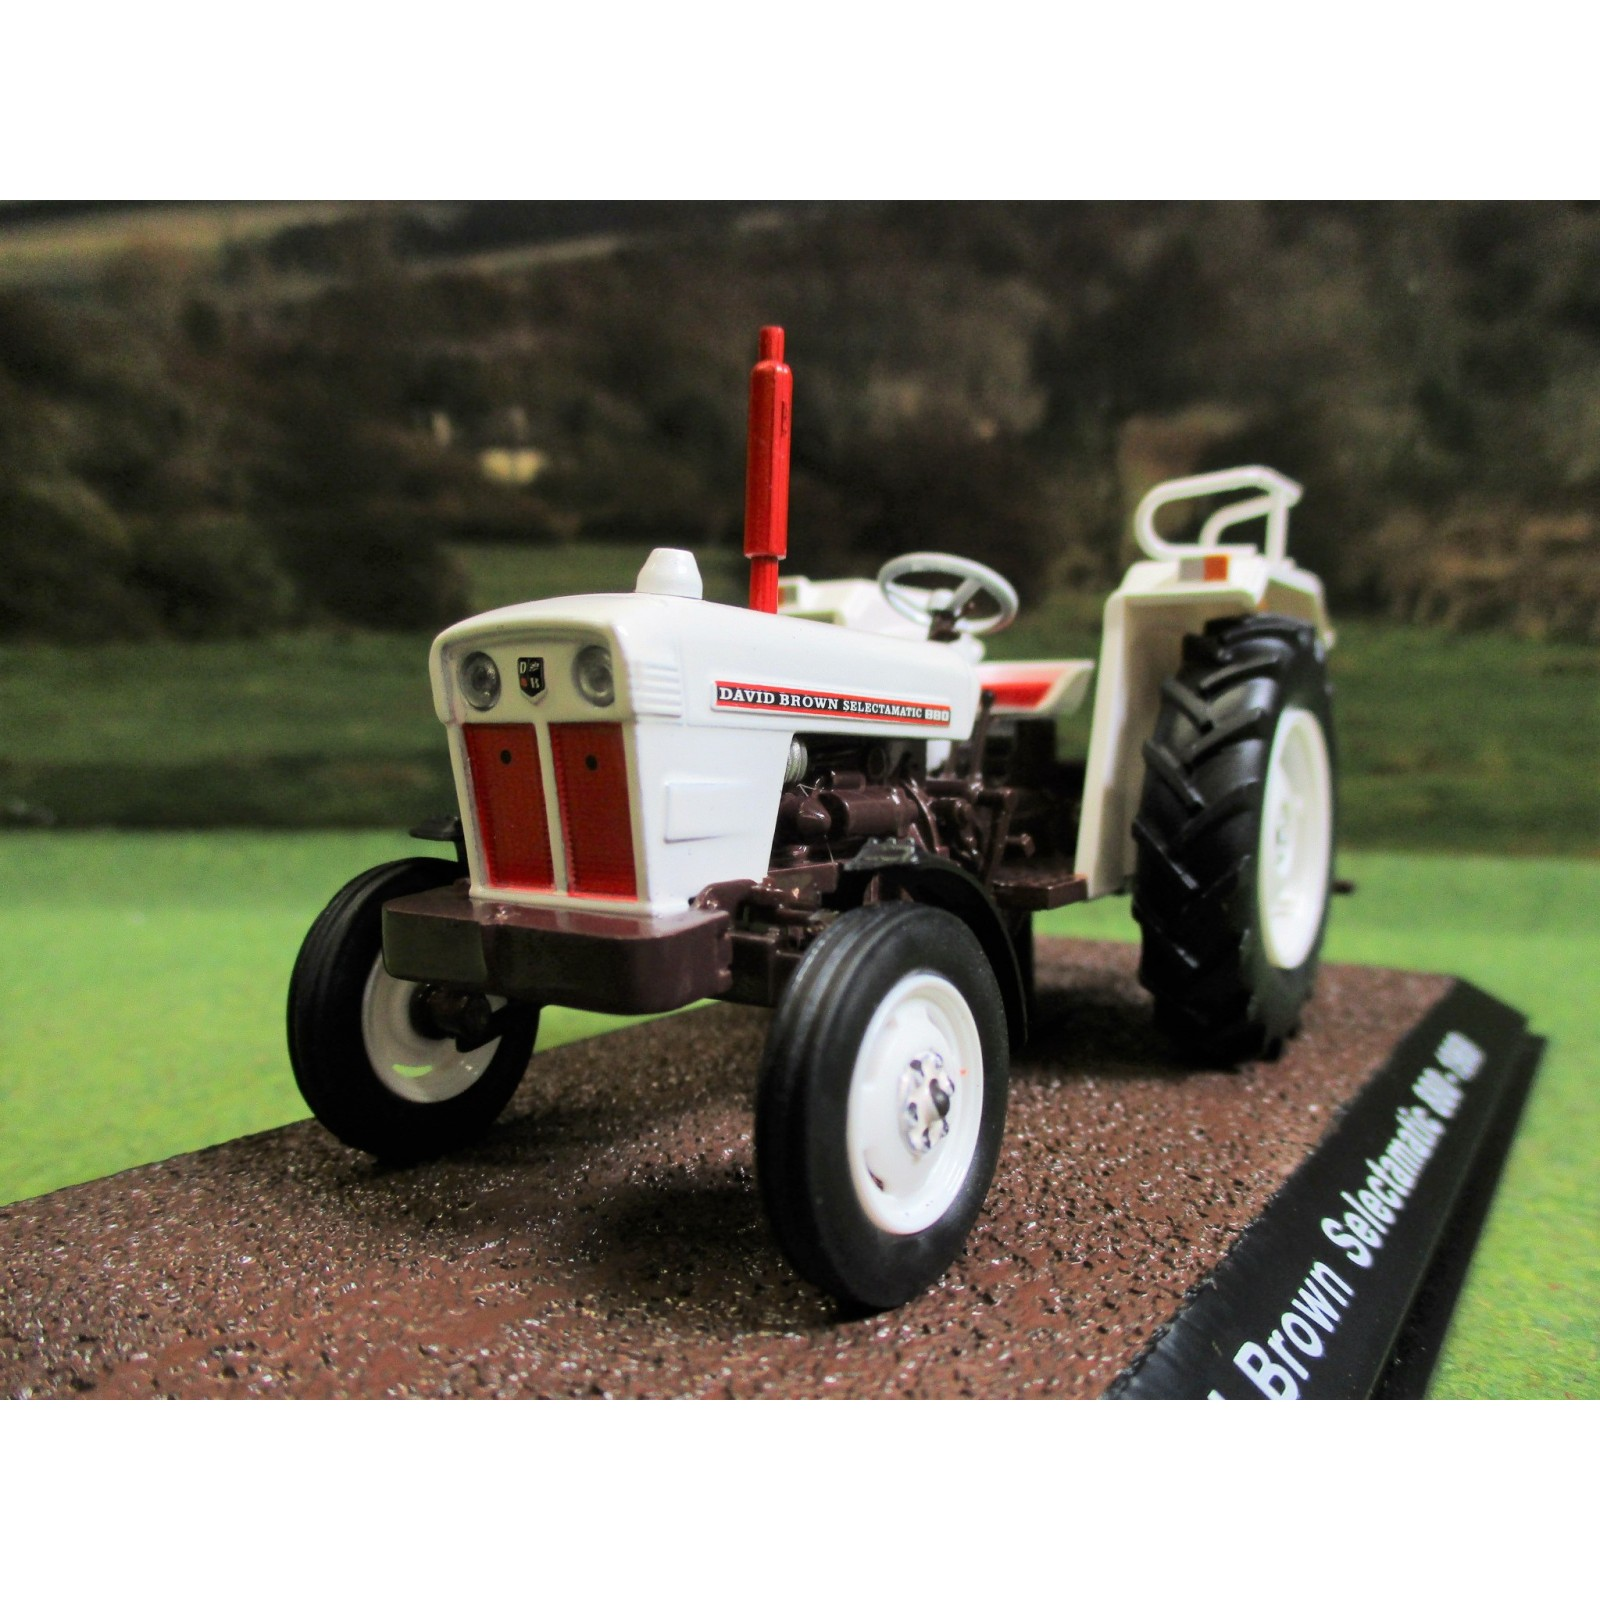 Modelo tractor 1:32 David Brown selectamatic 880-1969 atlas 7517029